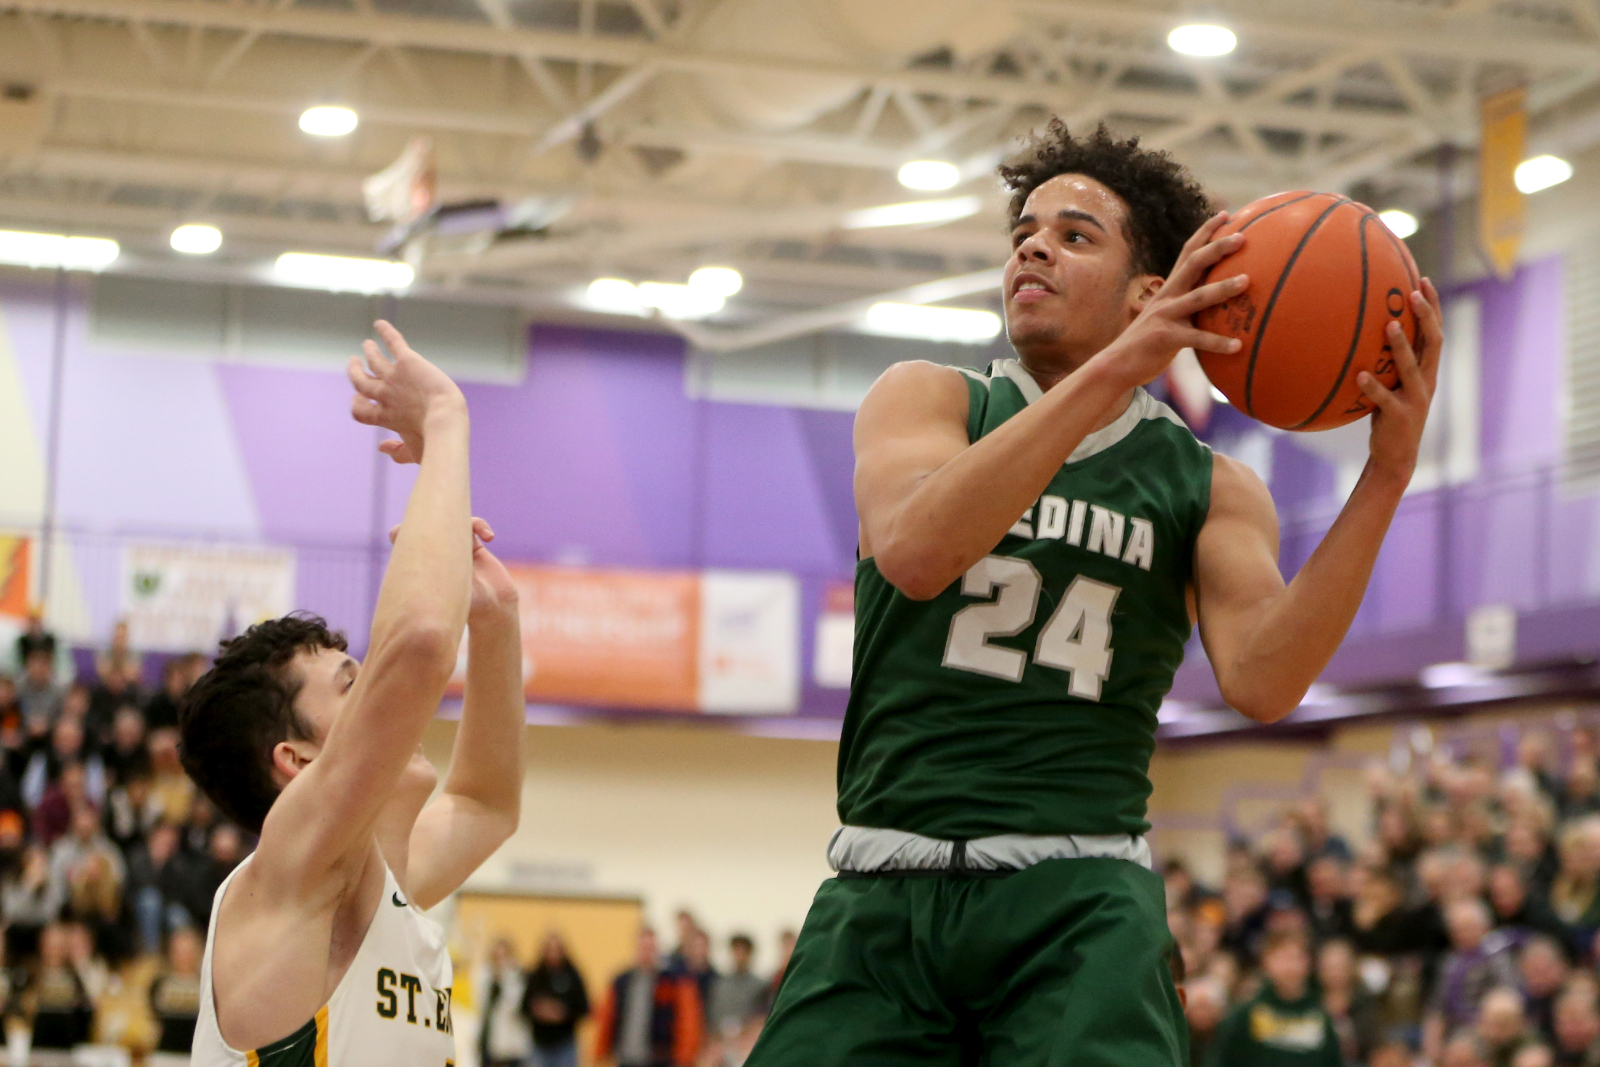 Live Coverage of the Medina Boys Basketball Game on Friday Night 12/4/20